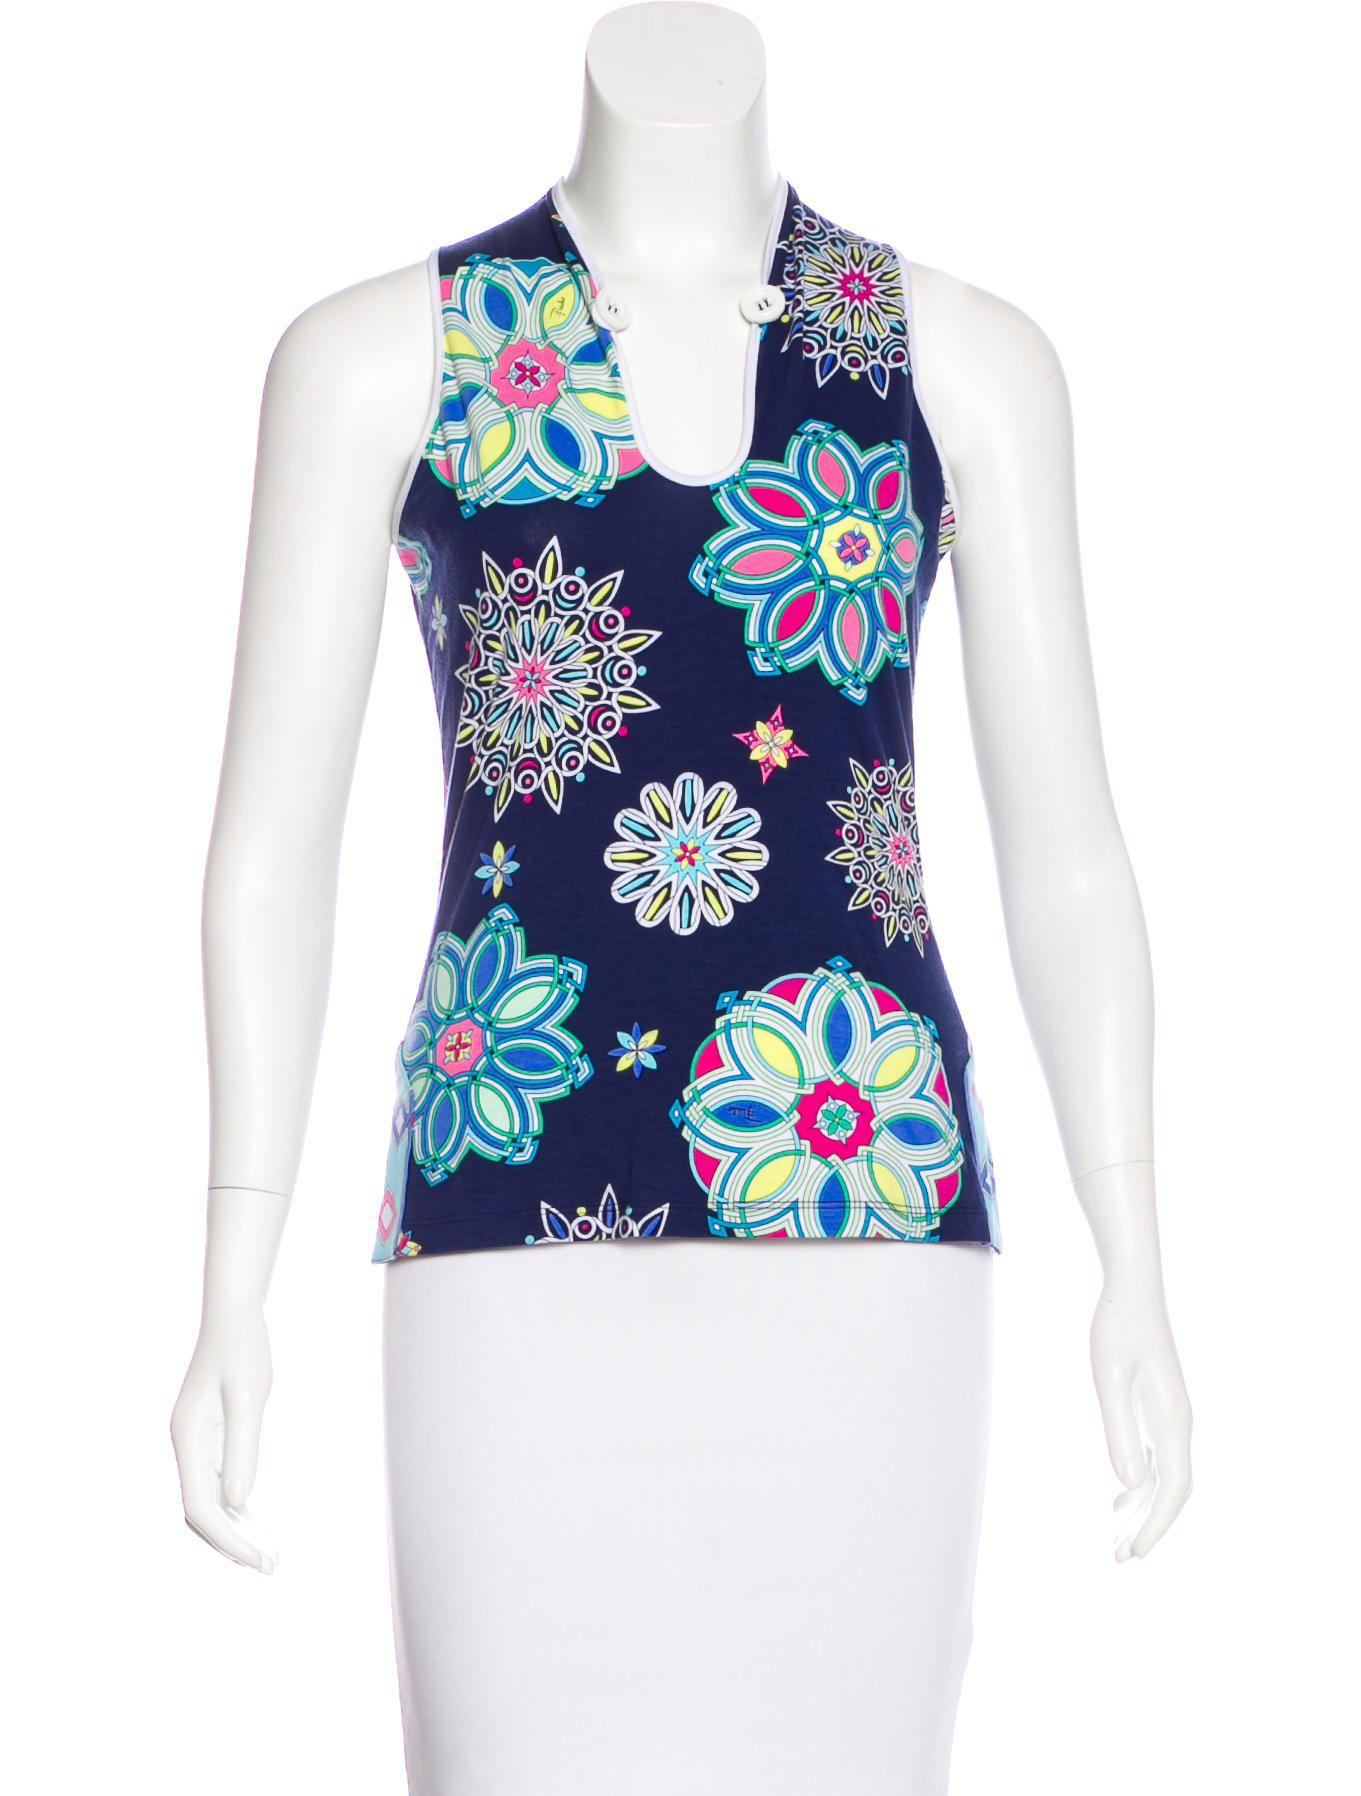 Cheap Price In China Emilio Pucci printed sleeveless shirt Cheap Sale Pay With Visa RFyXOoD